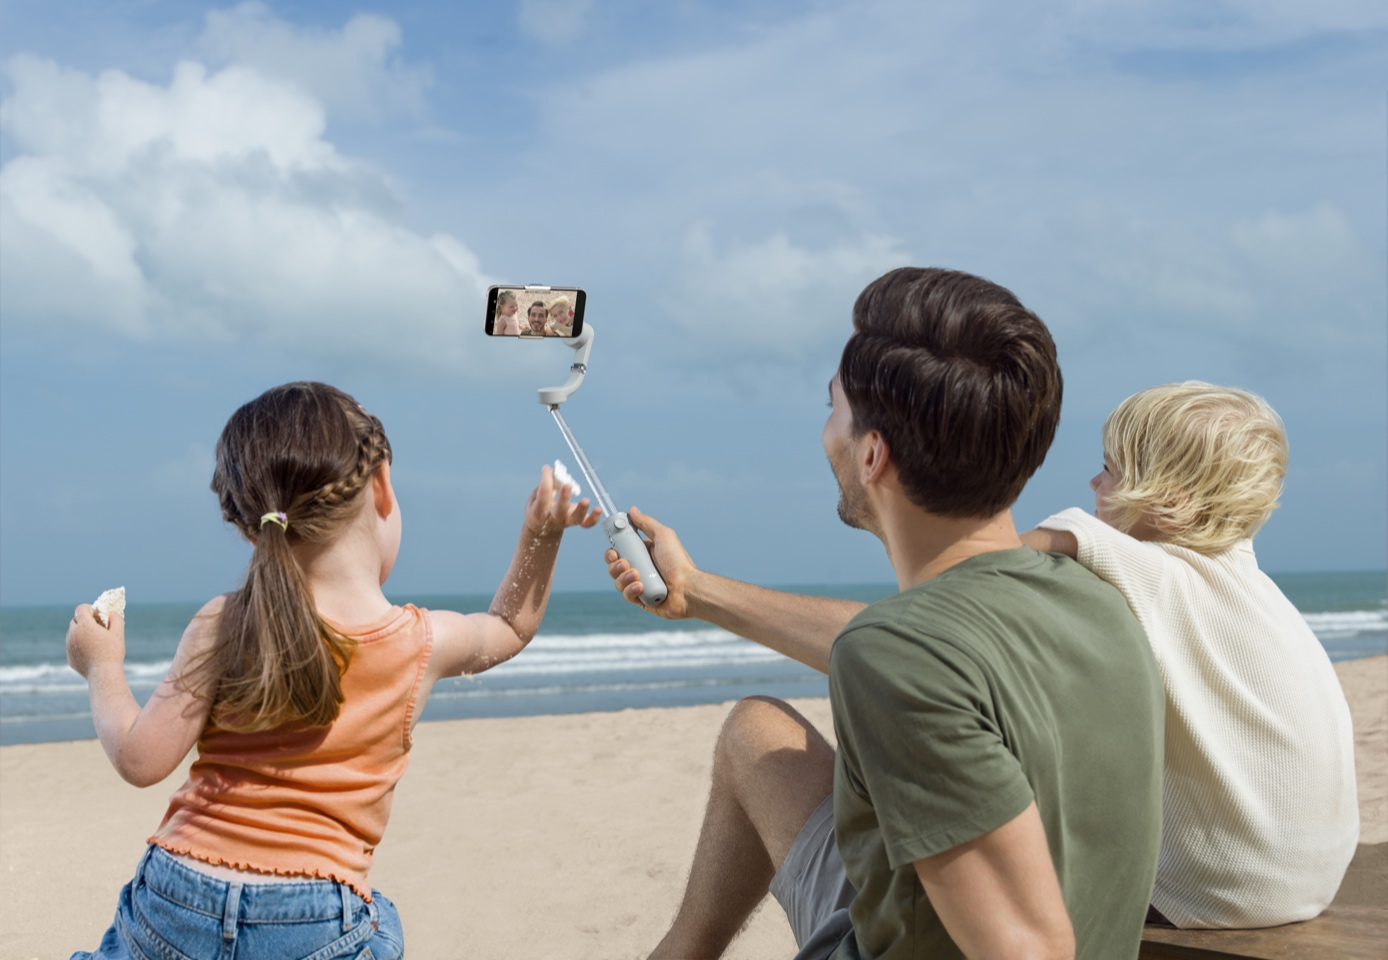 DJI OM5 Smartphone Gimbal Now Doubles as a Selfie Stick | Check It Out